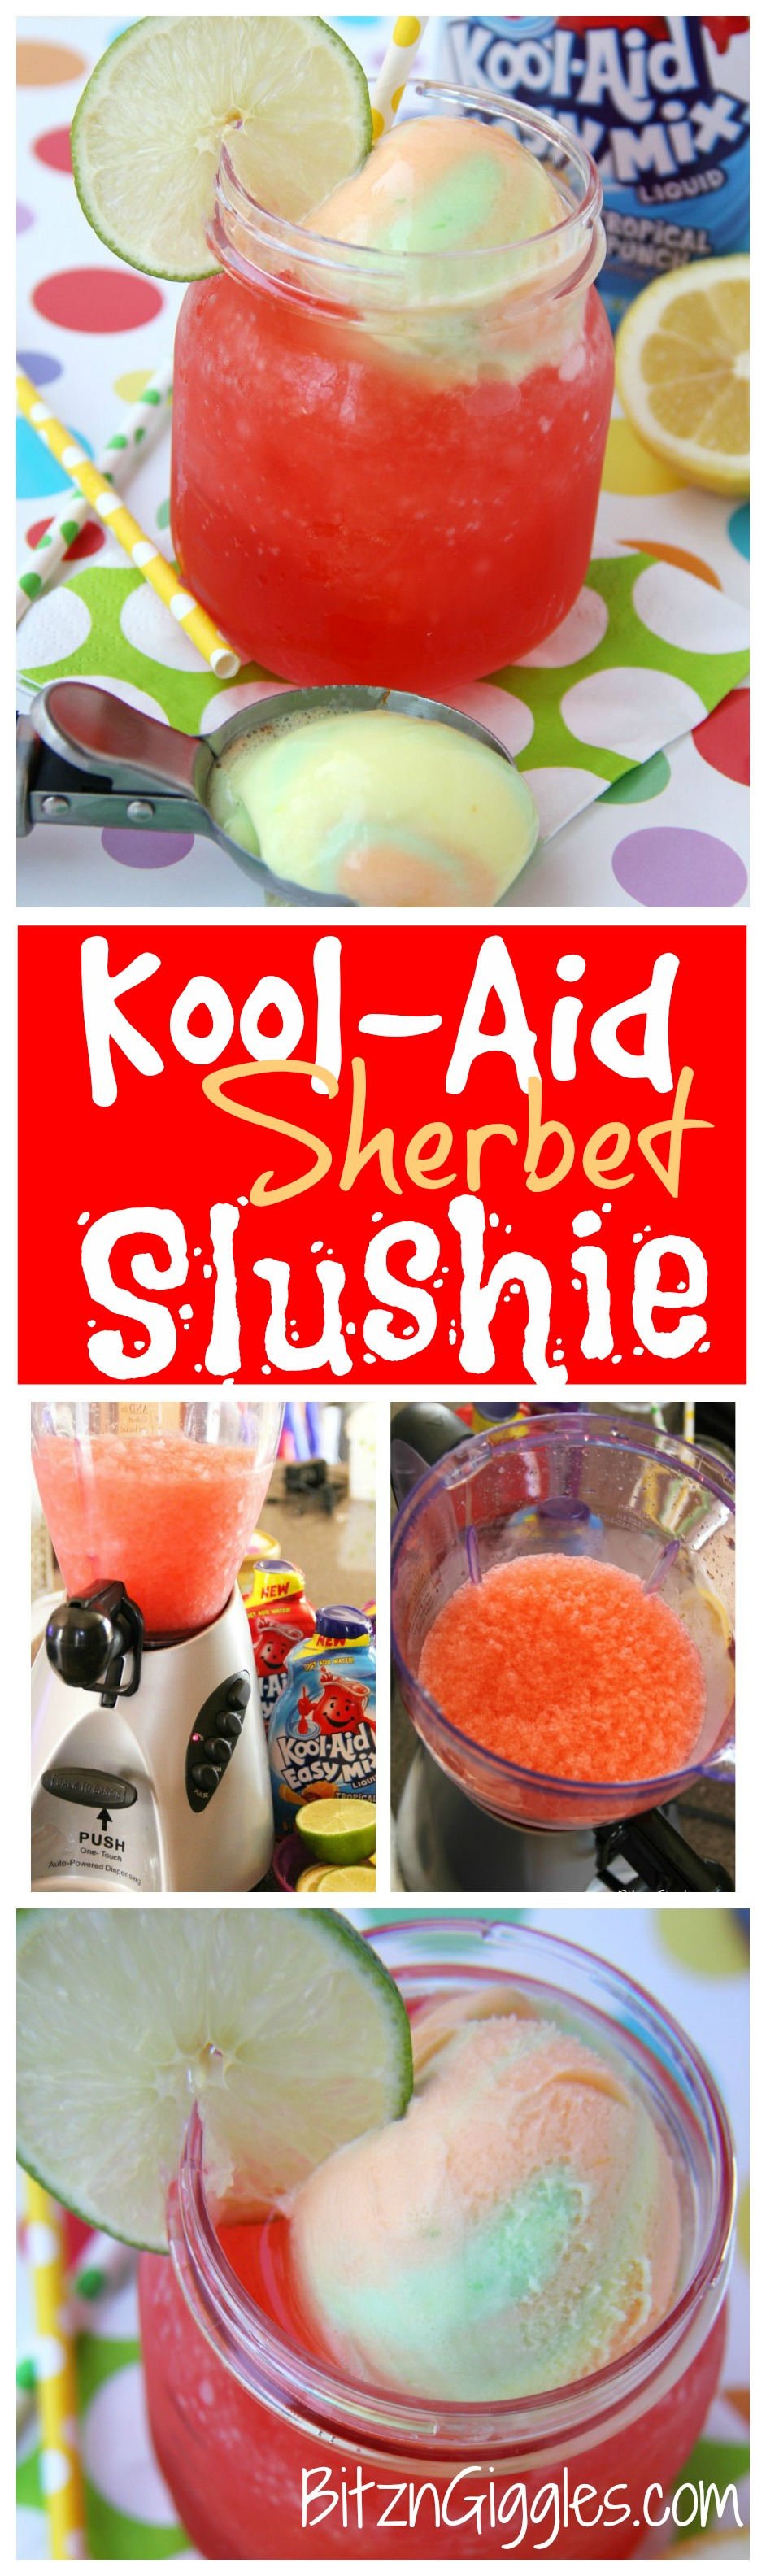 Kool-Aid Sherbet Slushie - A refreshing Kool-Aid slushie topped off with a creamy scoop of rainbow sherbet!